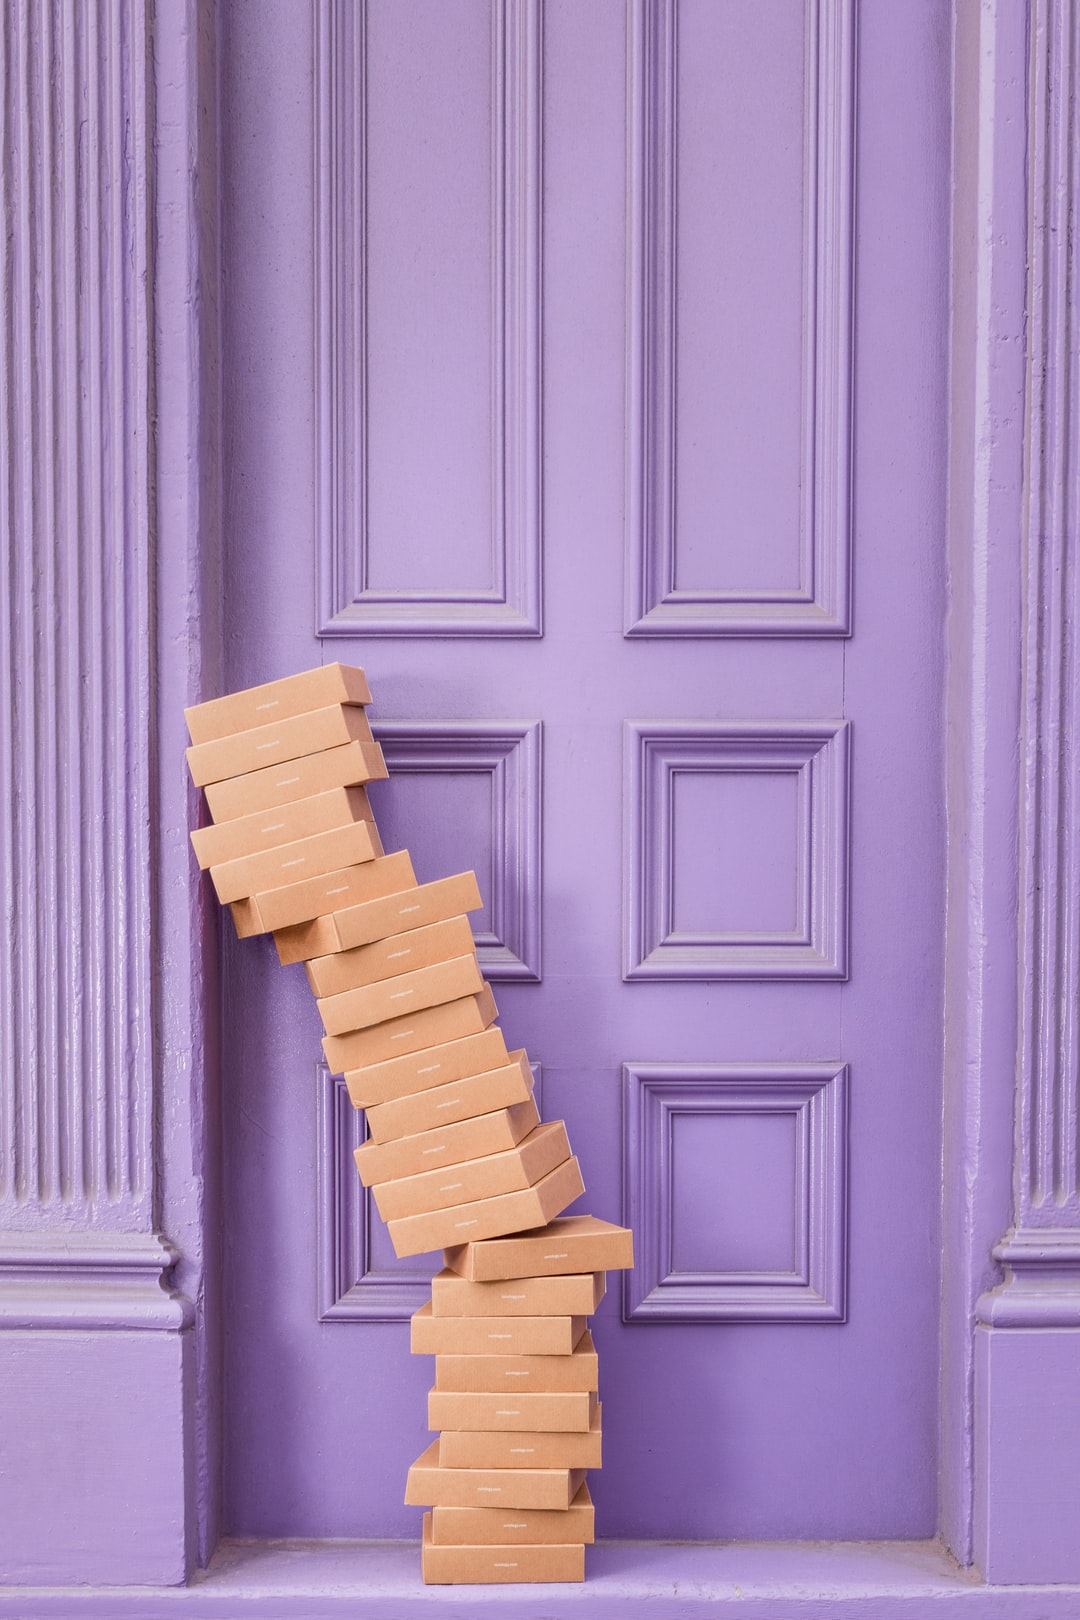 brown boxes stacked in front of a purple door